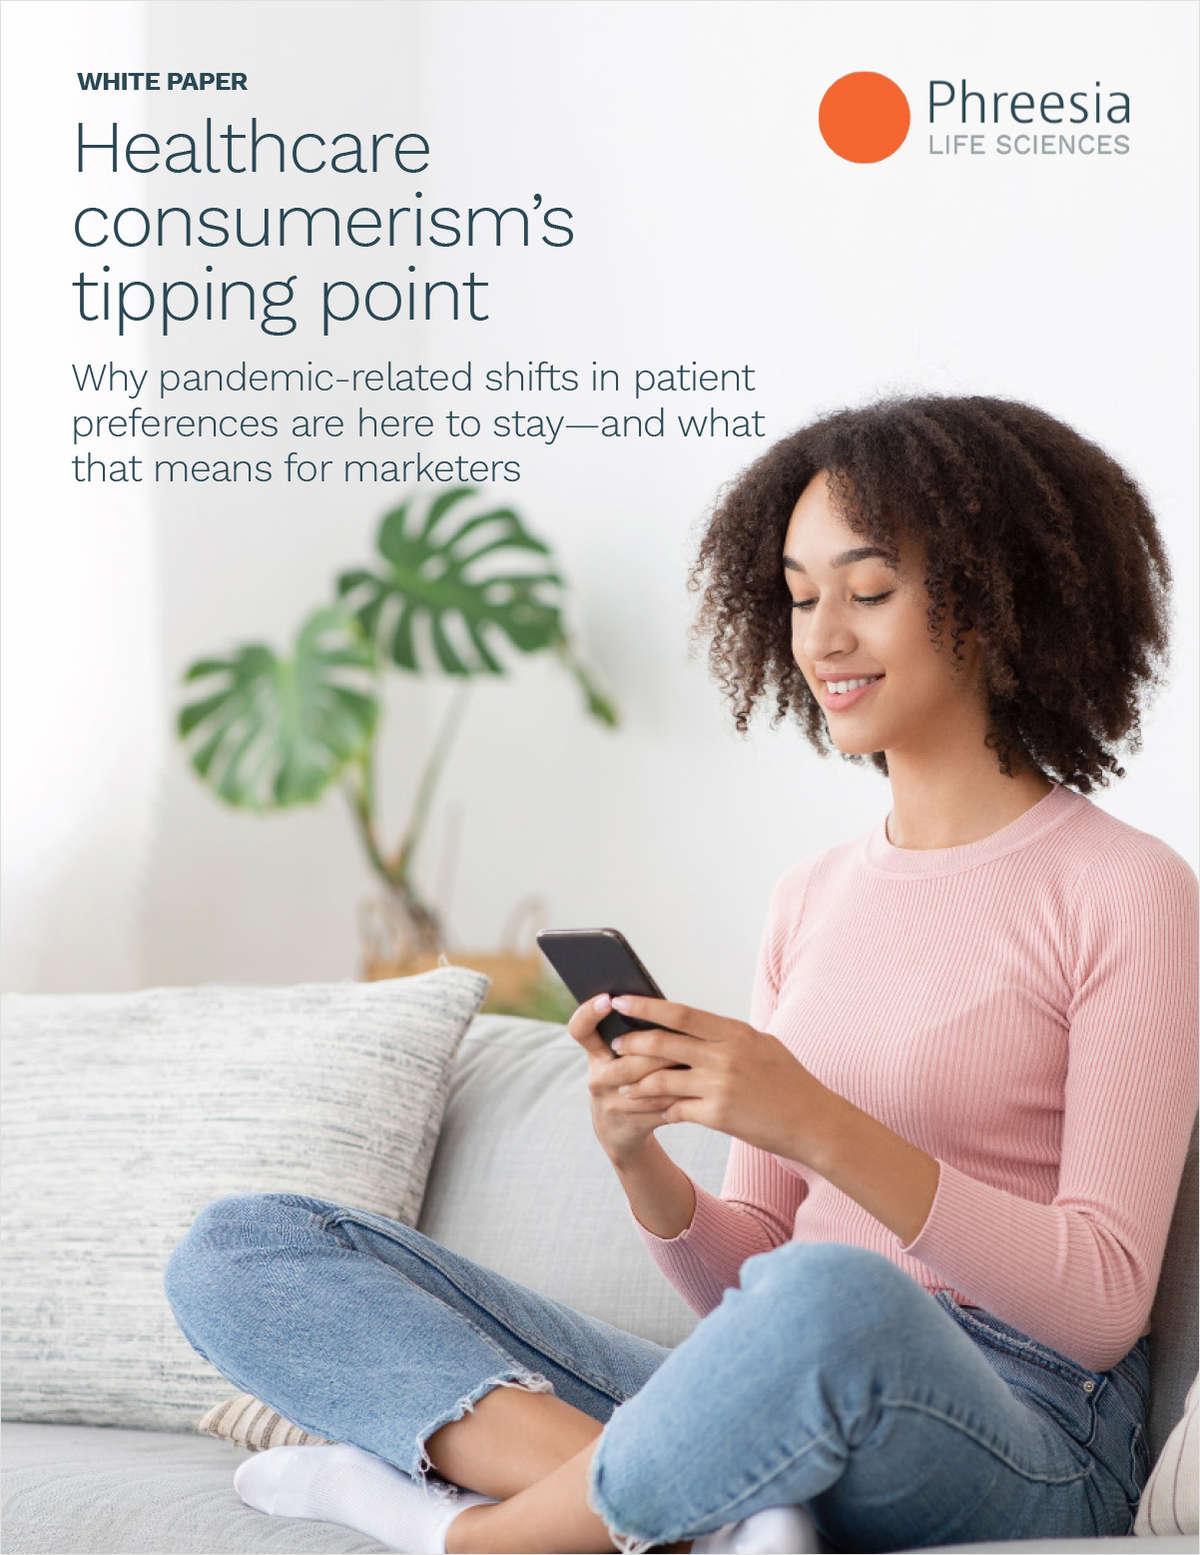 Healthcare consumerism's tipping point: Why pandemic-related shifts in patient preferences are here to stay--and what that means for marketers